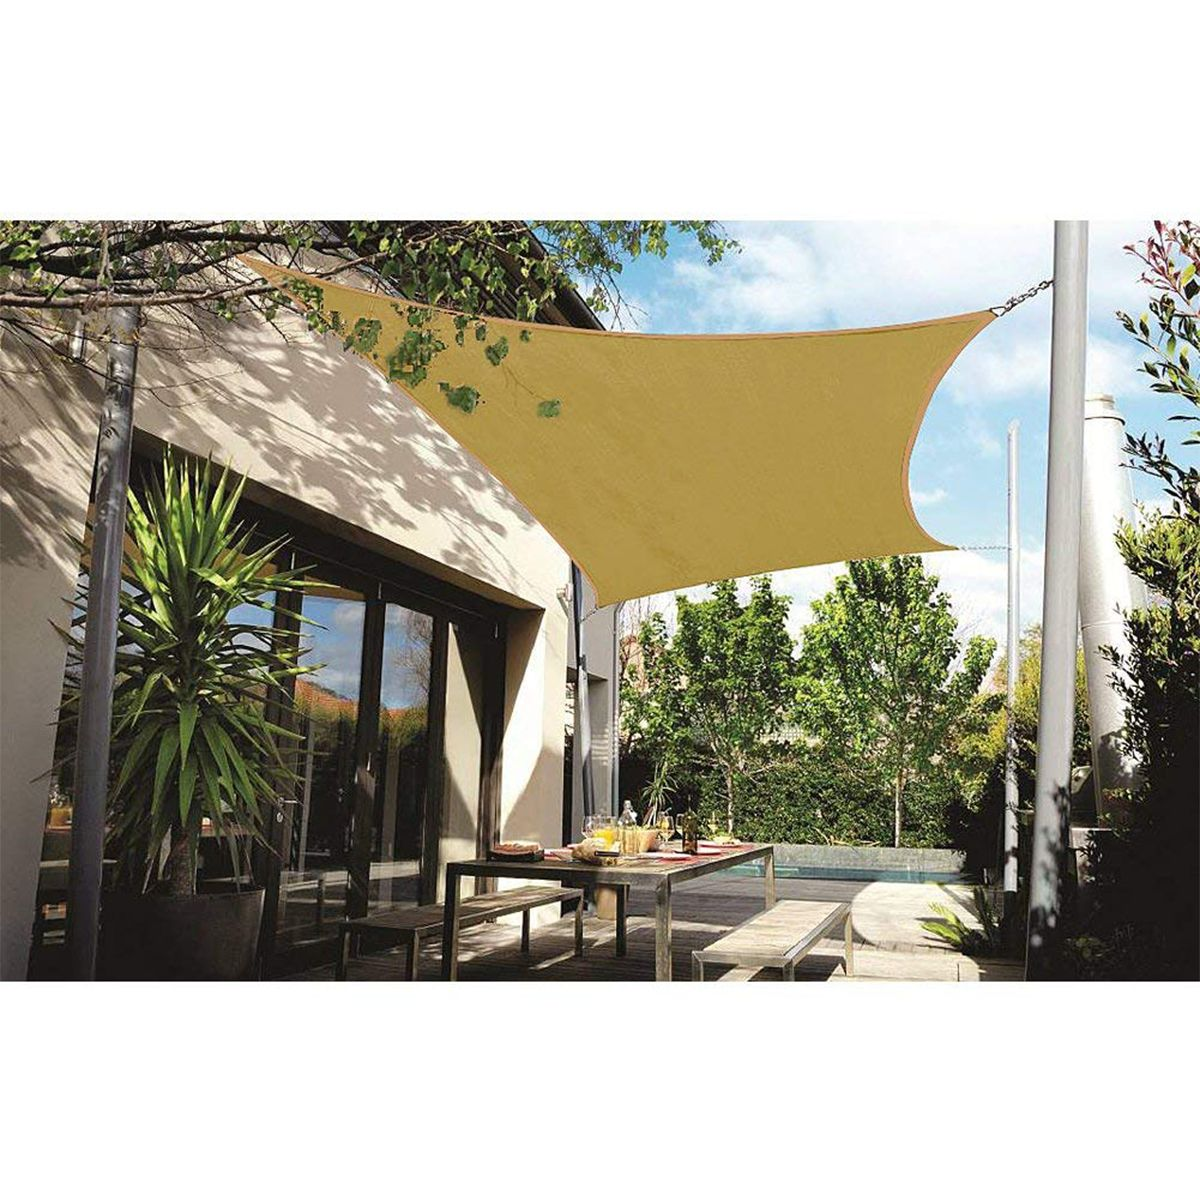 280GSM HDPE Farbic Square 3x3m/4x4m Sun Shade Sail Sunshading Nets 4x4m for Garden Cover Flowers Plants Patio Lawn